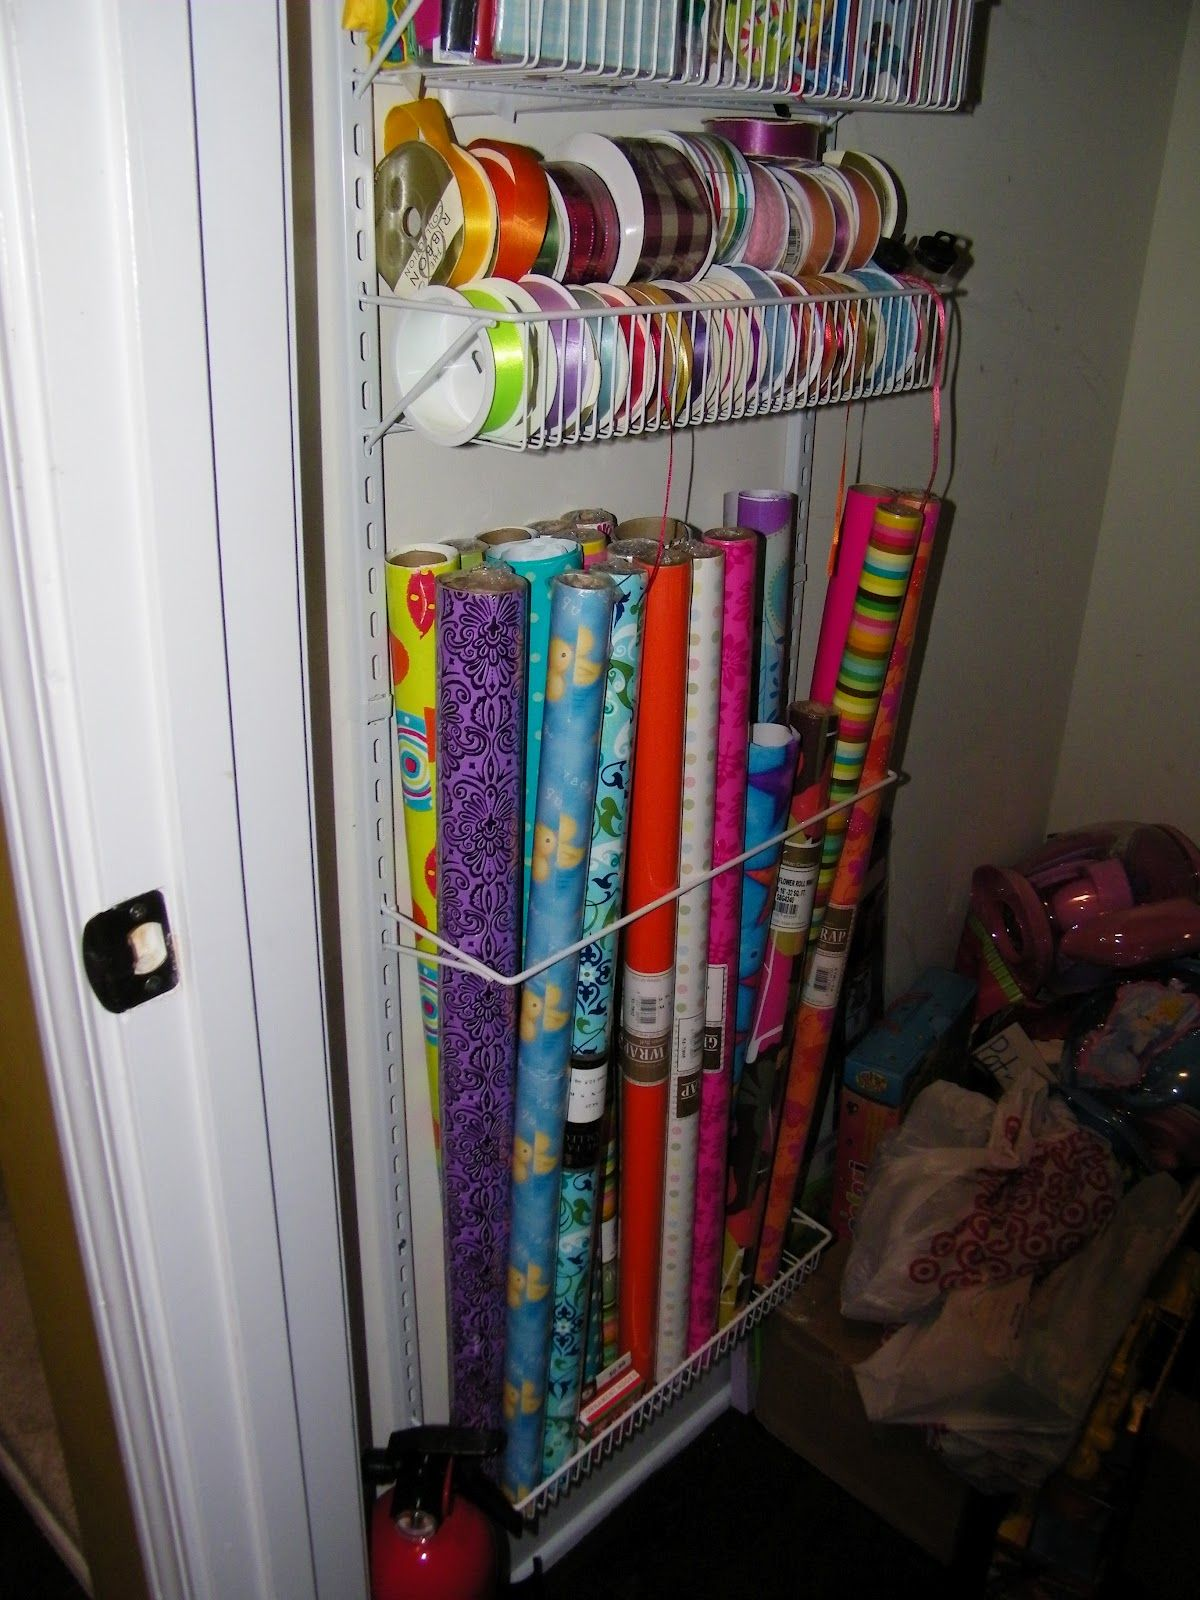 Wrapping Paper Storage Container Organizer | Please ignore the bags behind the organizer. Thatu0027s my current gift . & Wrapping Paper Storage Container Organizer | Please ignore the bags ...